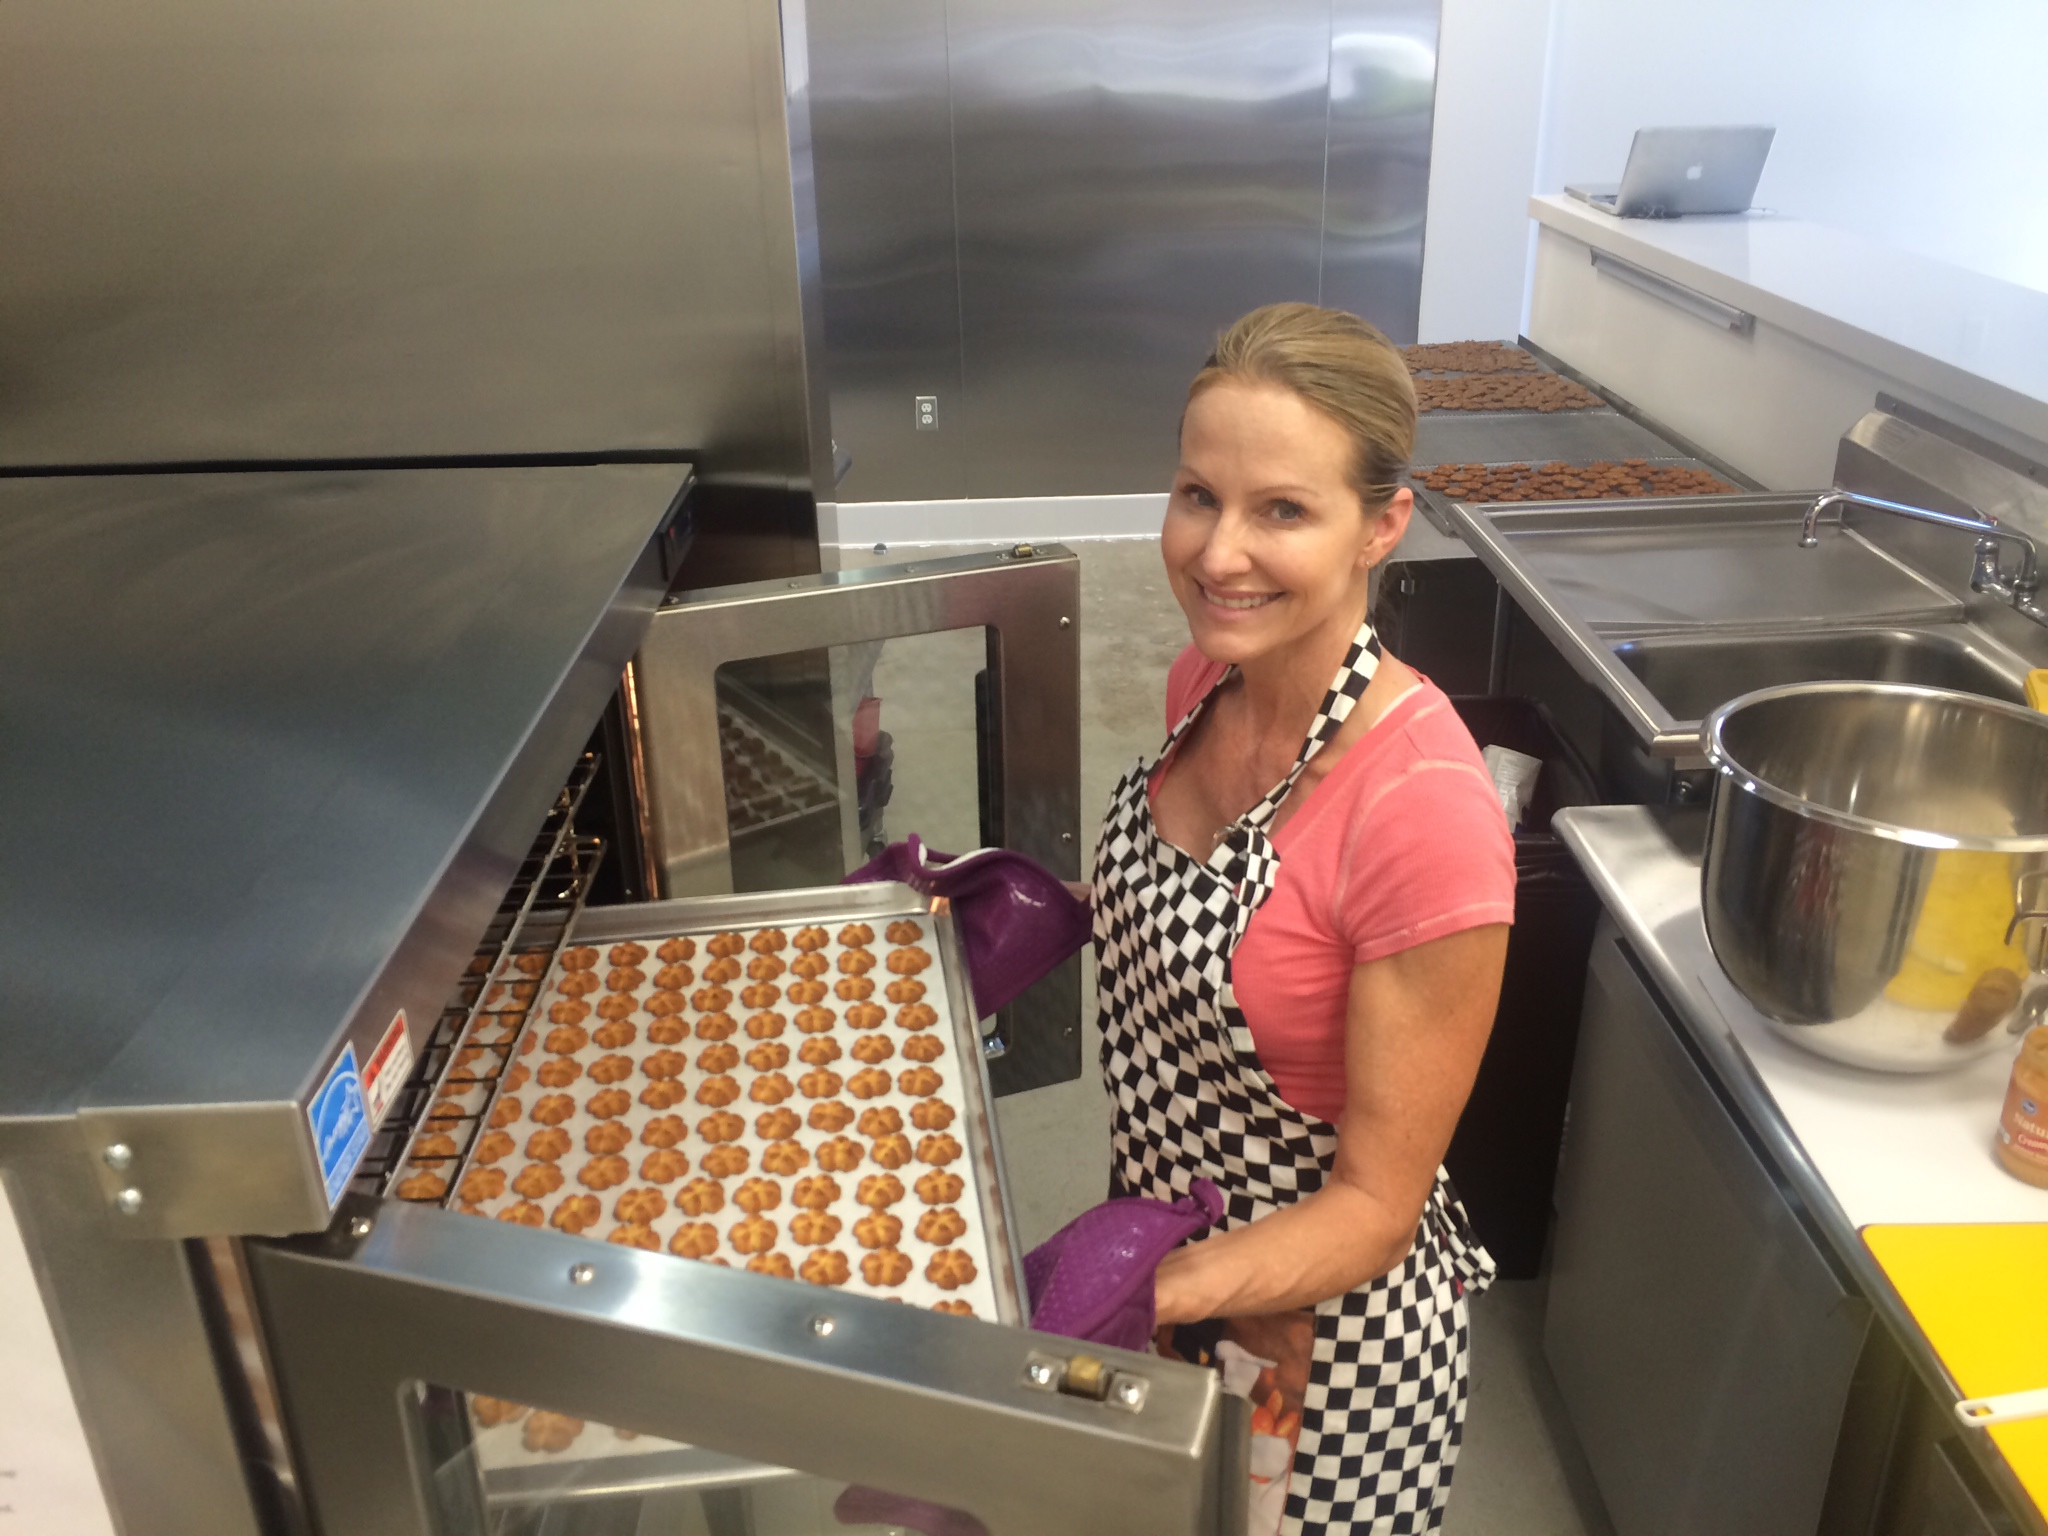 Woman in Kitchen smiling and baking dog treats